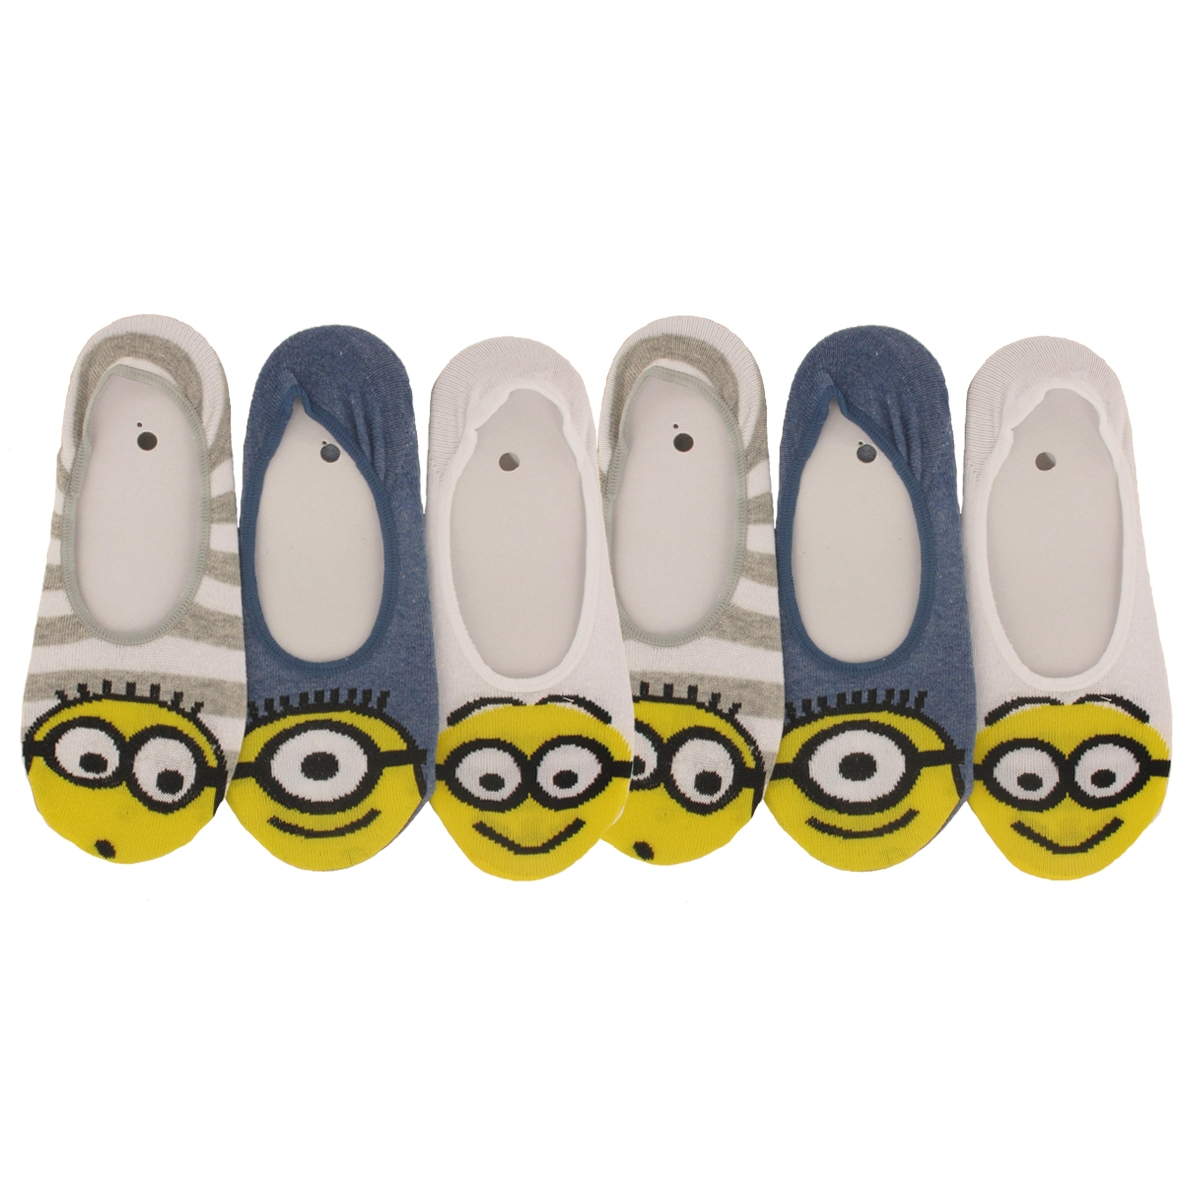 chaussettes invisibles femme les minions lot de 6 ebay. Black Bedroom Furniture Sets. Home Design Ideas